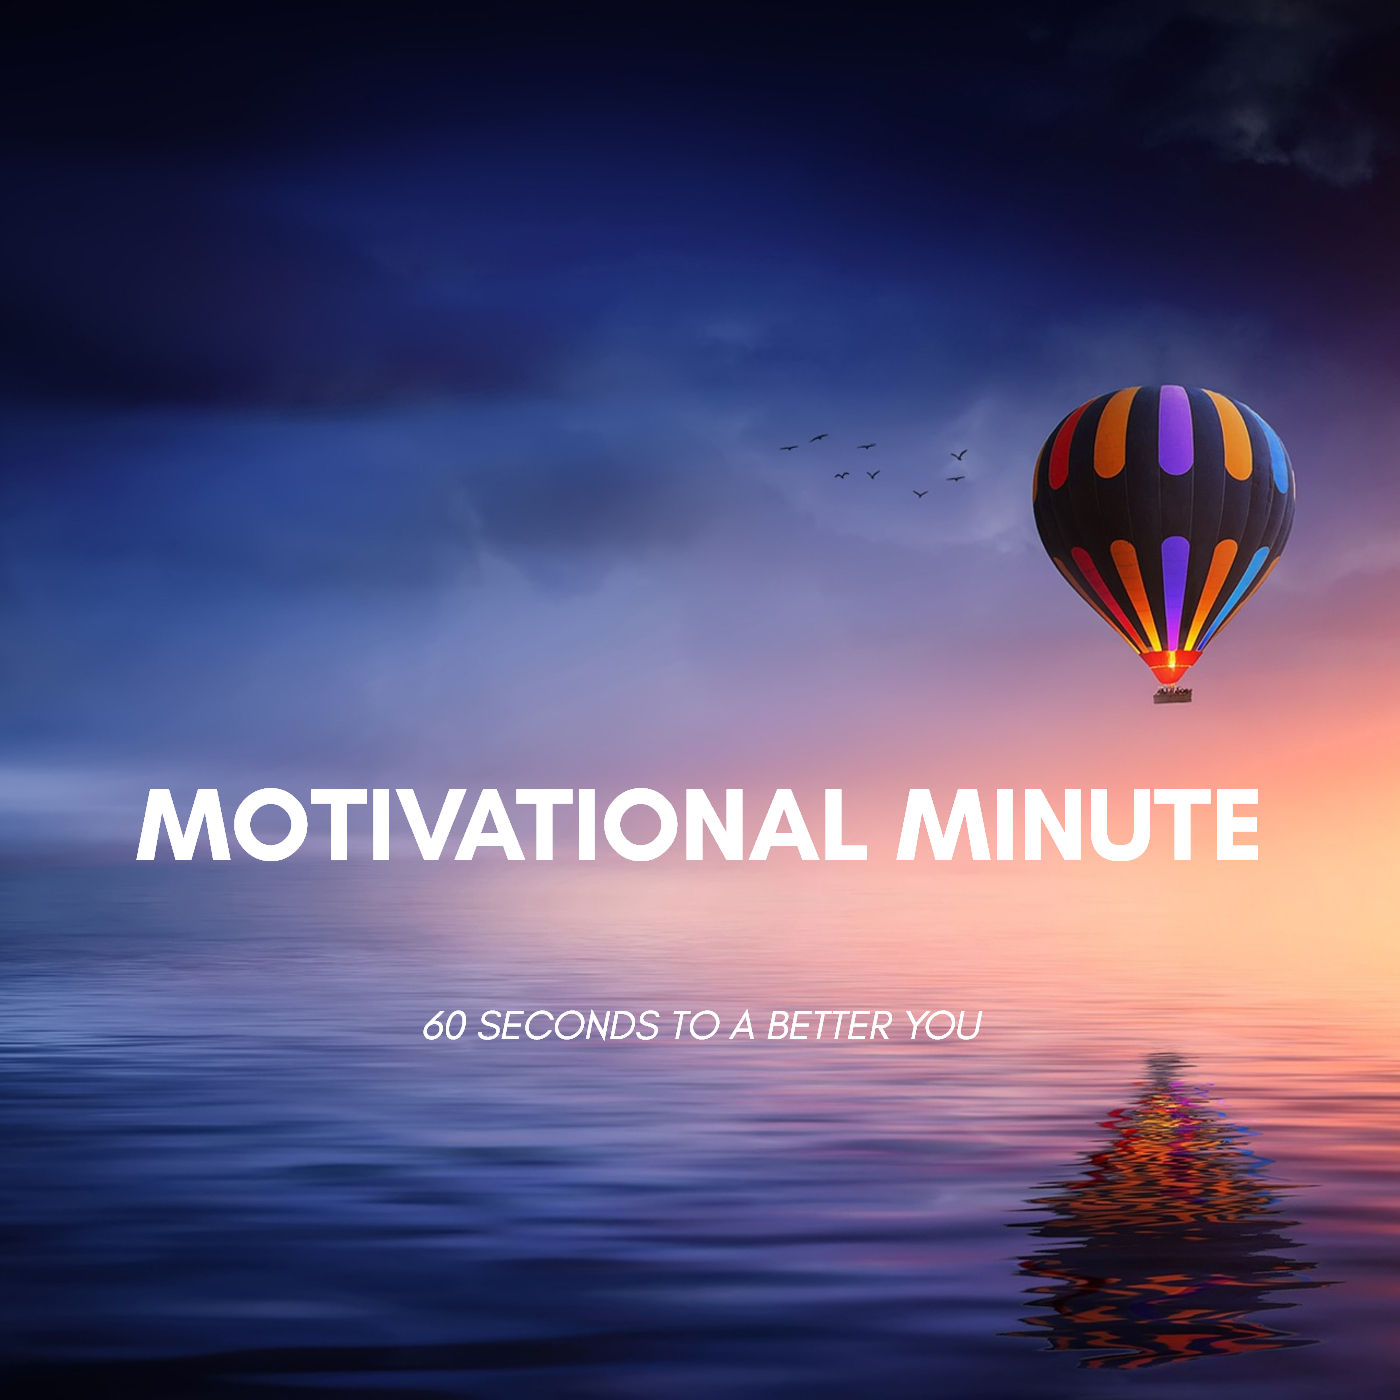 Motivational Minute| Quick Motivation for Busy People!